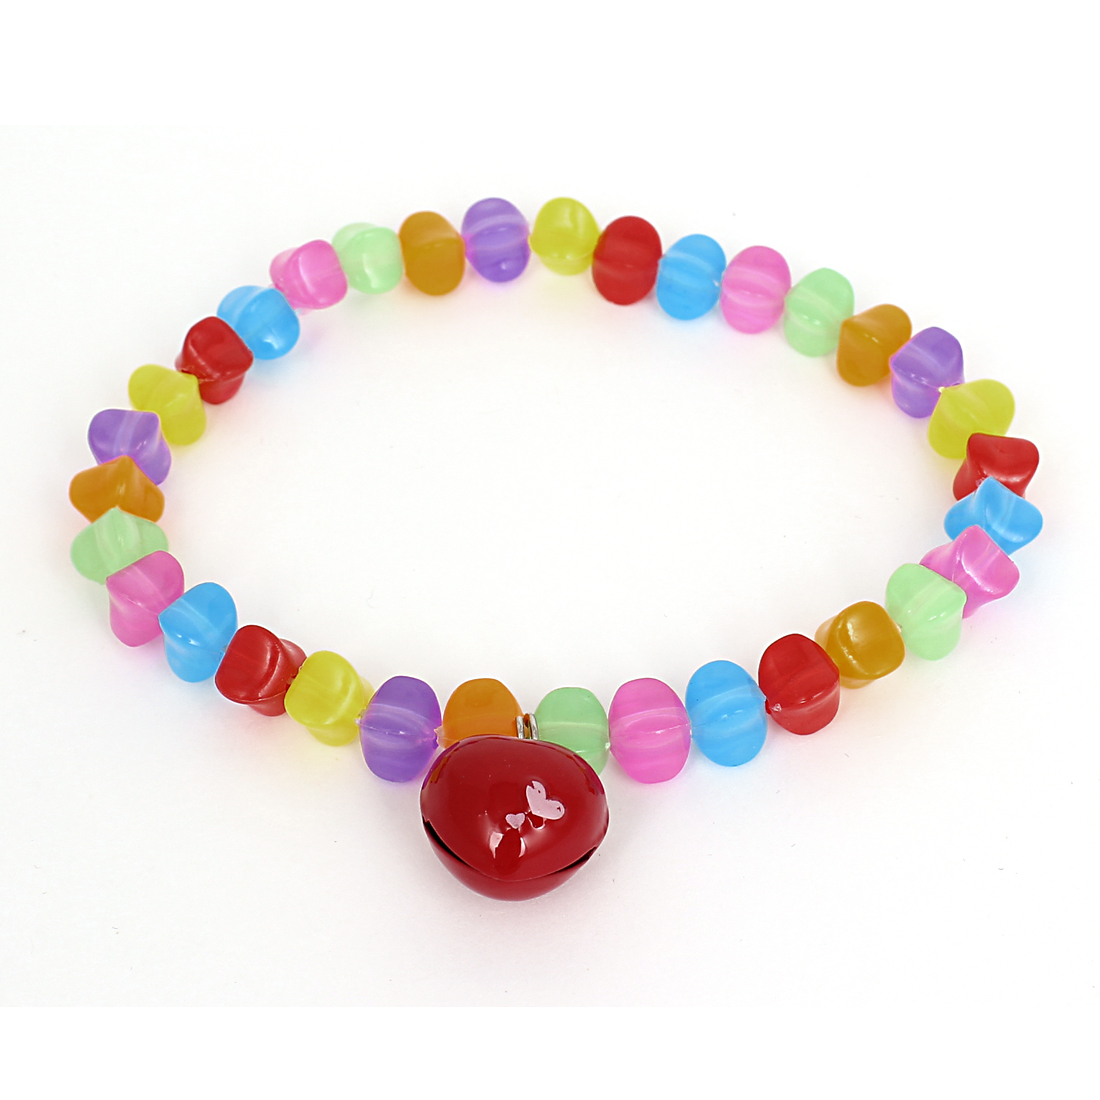 Heart Bell Pendant Pet Dog Plastic Beads Decor Collar Necklace Colorful XL